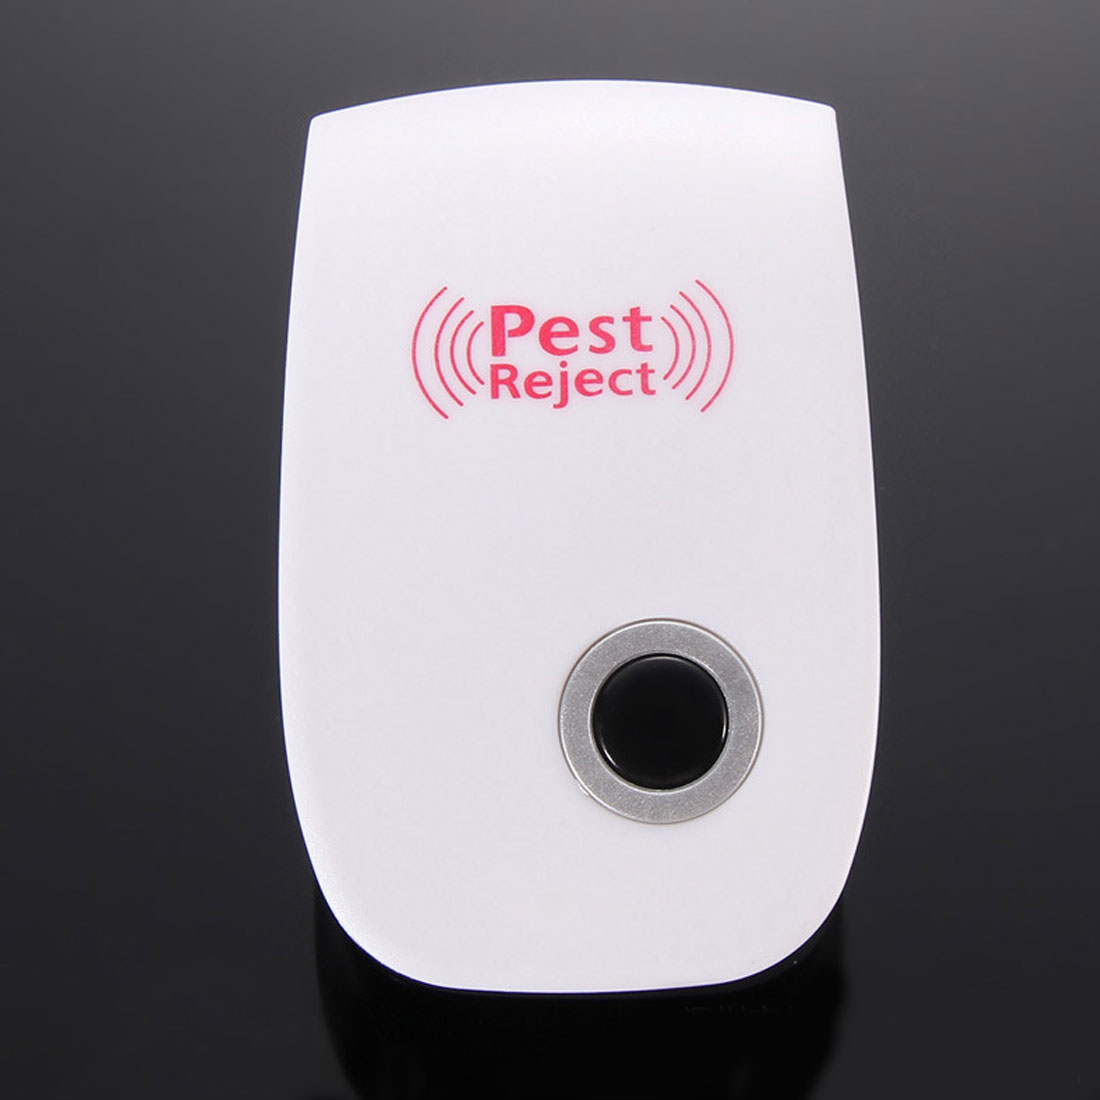 Mosquito Killer Electronic Multi-Purpose Ultrasonic Pest Repeller Reject Rat Mouse Repellent Anti Rodent Bug Reject Ect